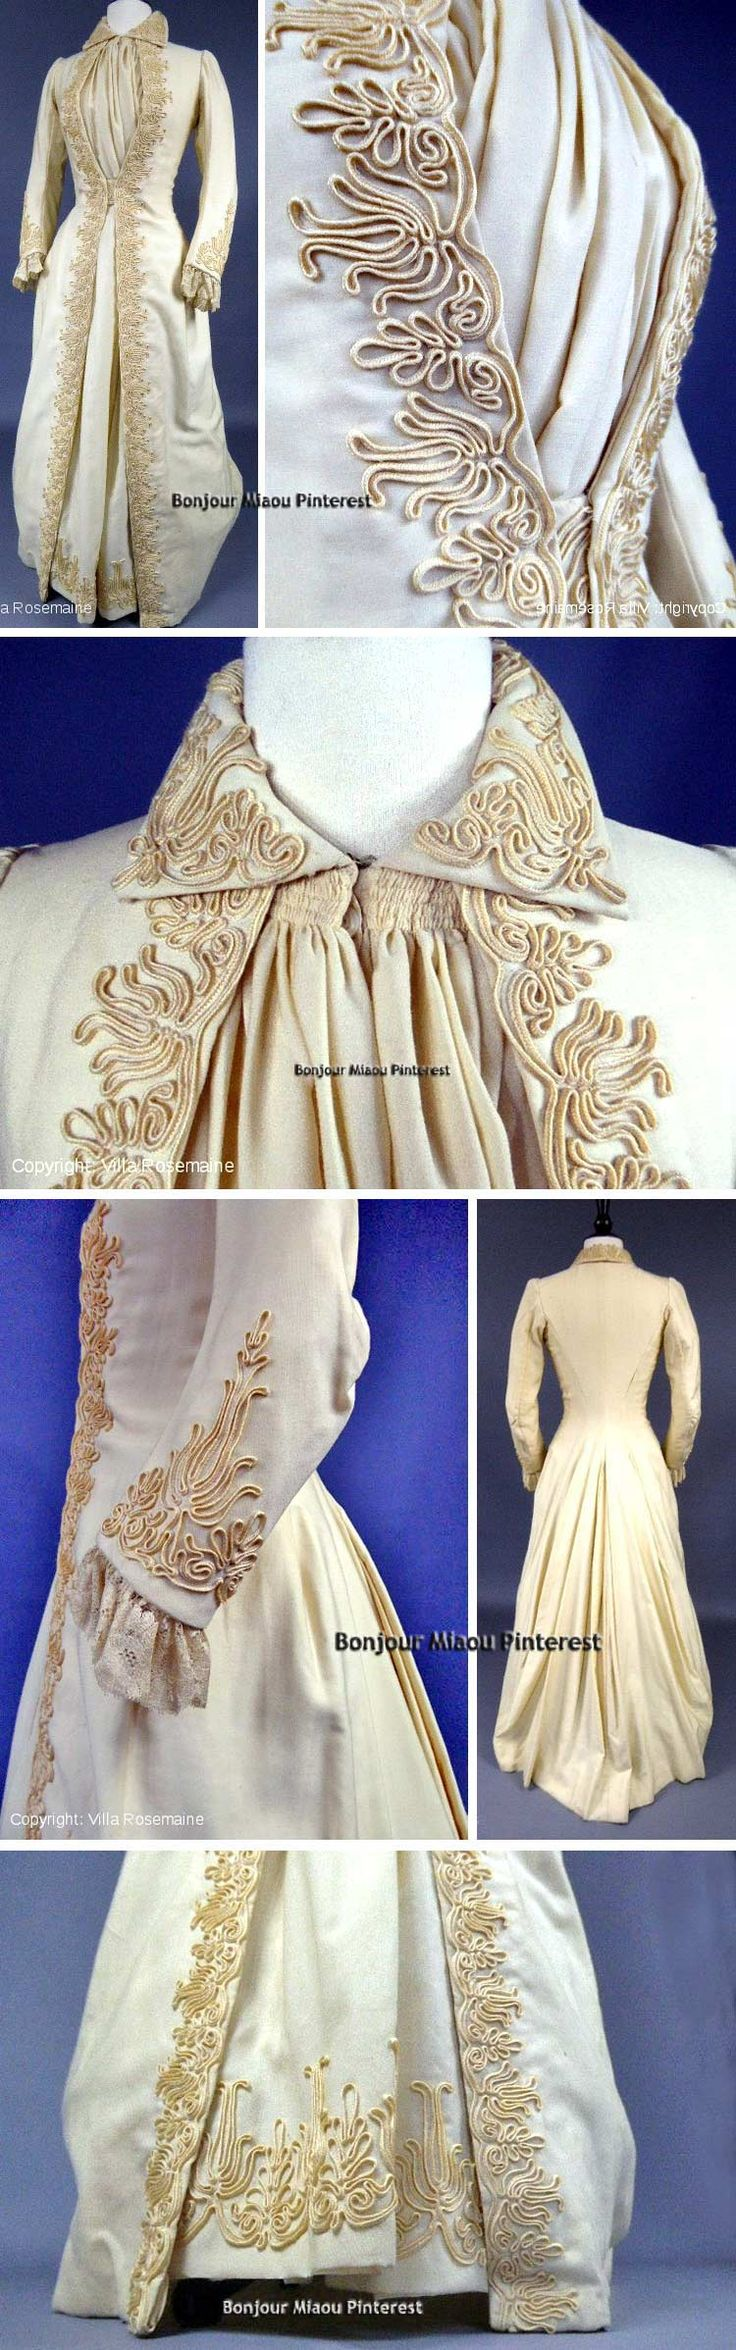 115 best Artistic Reform Tea Gowns images on Pinterest | Historical ...